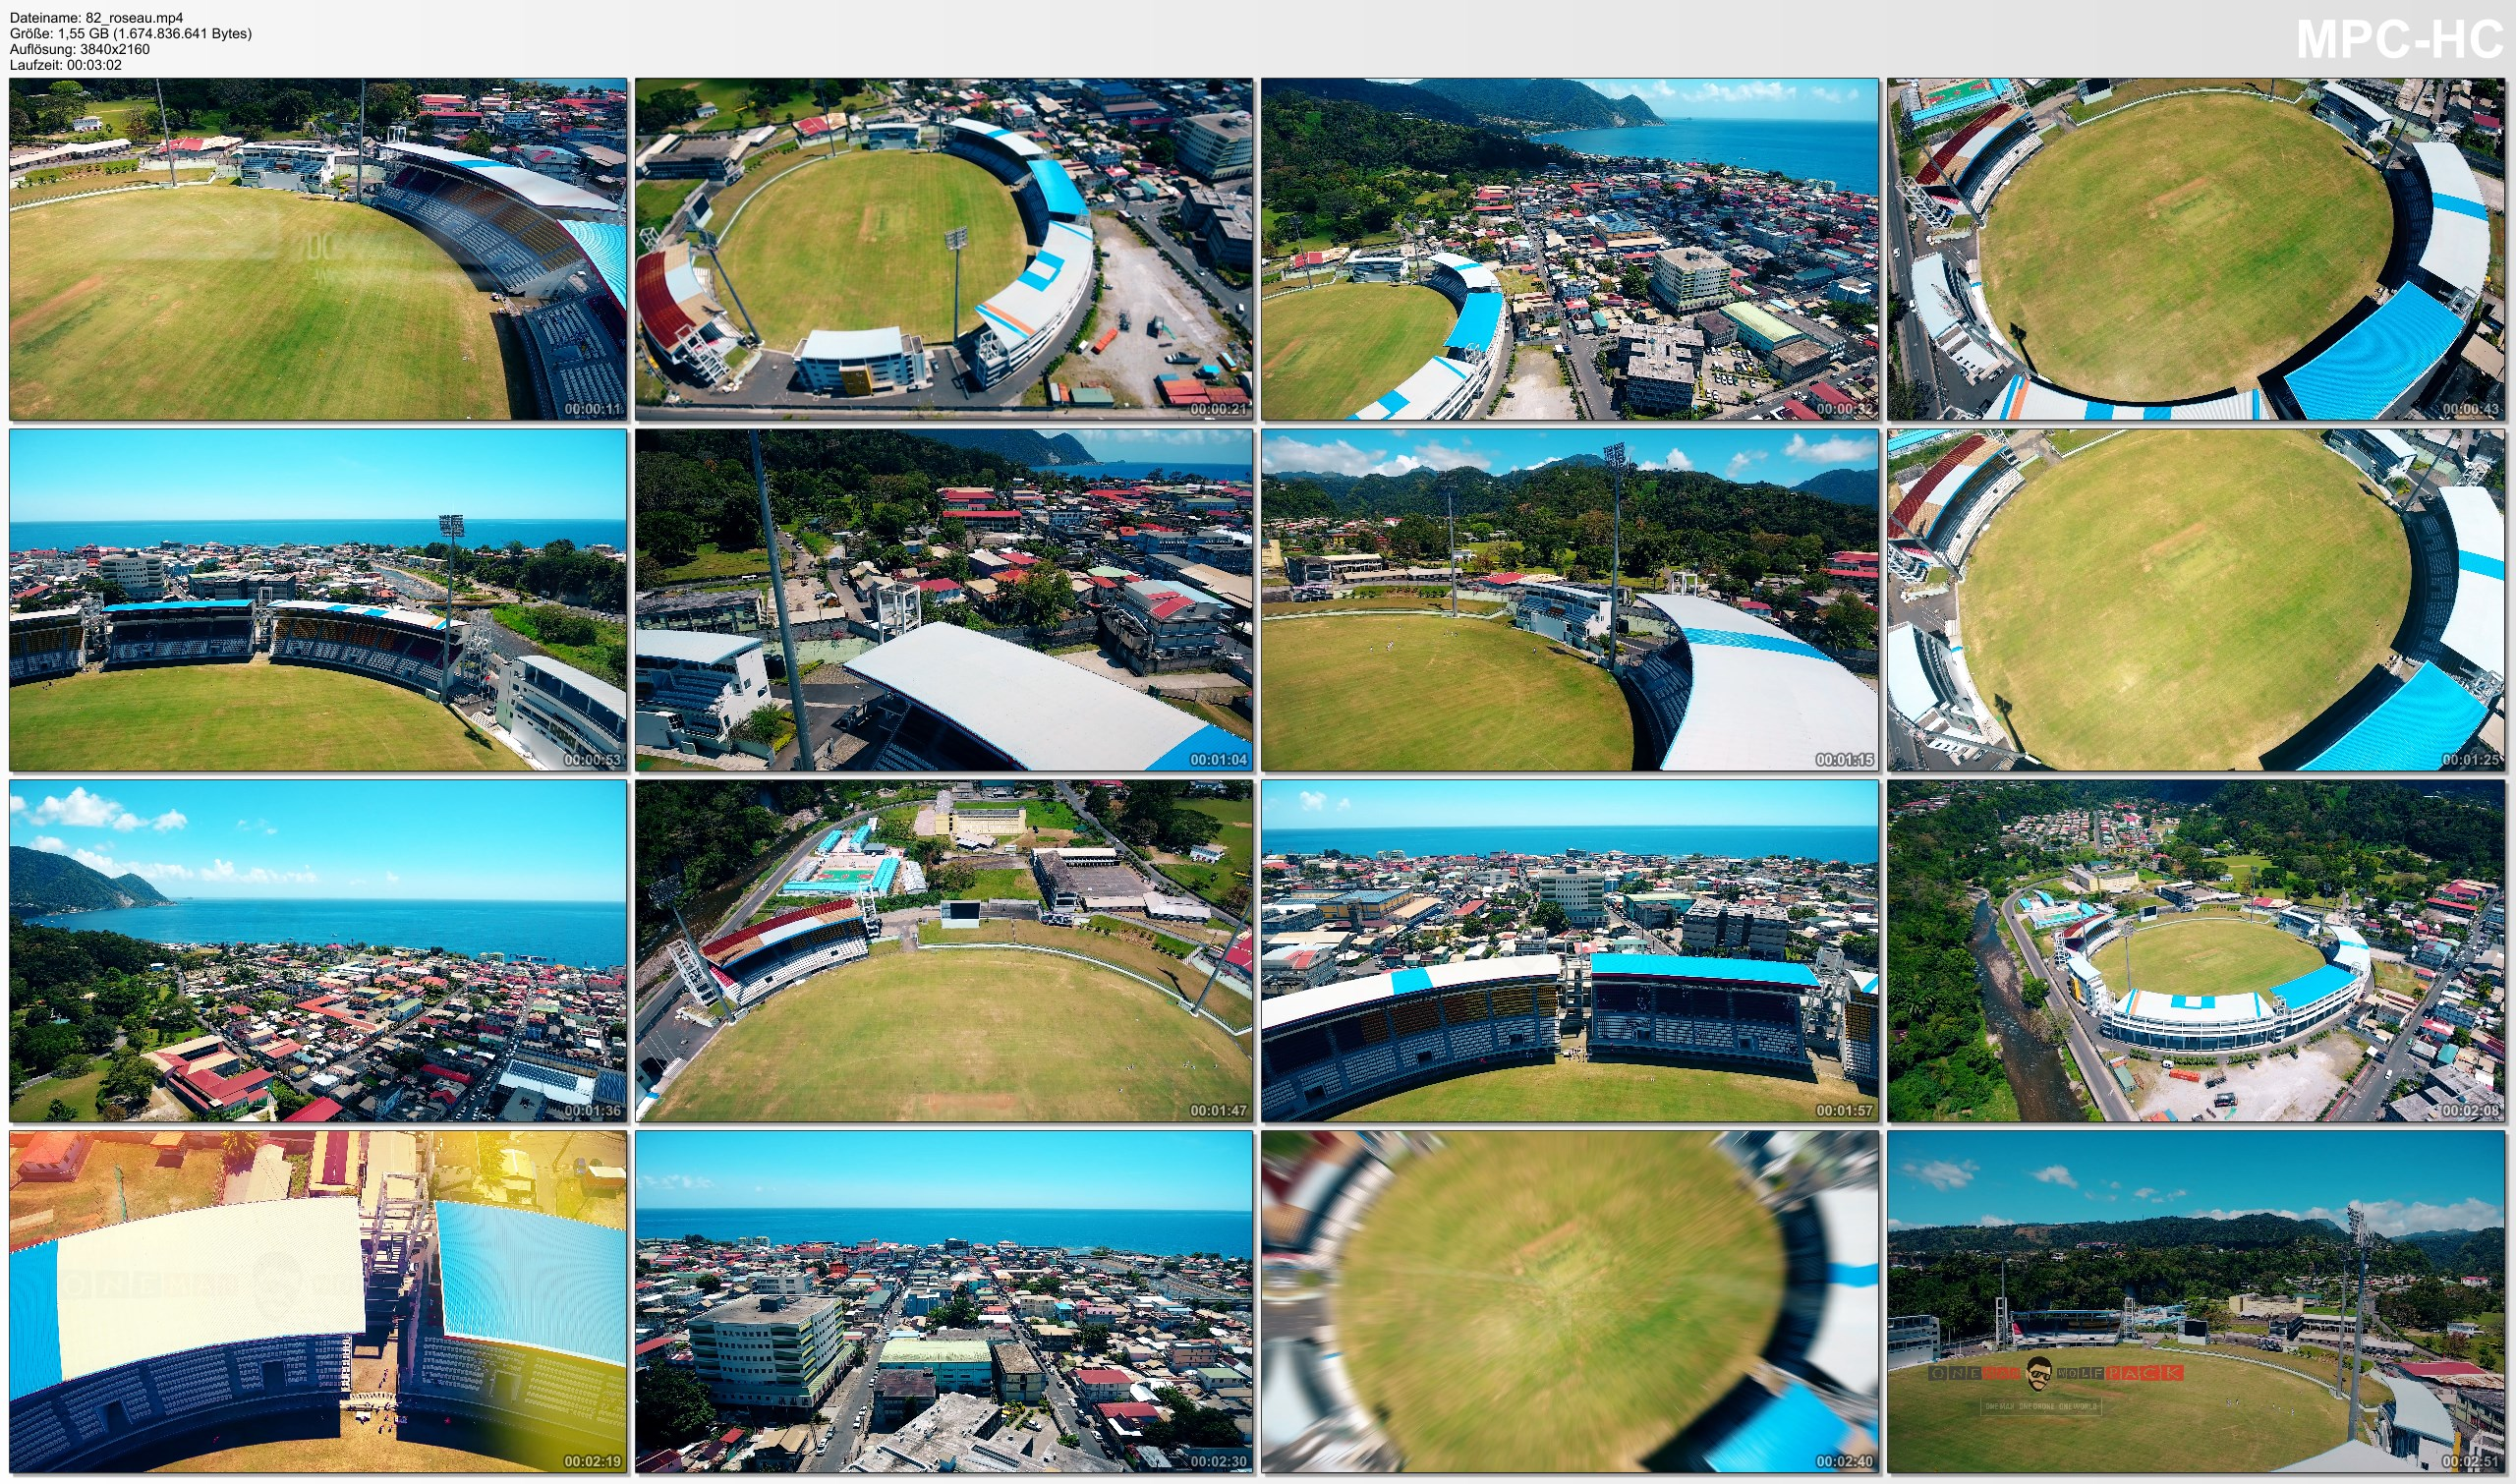 Drone Pictures from Video 【4K】Drone Footage | WINDSOR PARK STADIUM Dominica ..:: Spectacular Arenas 2019